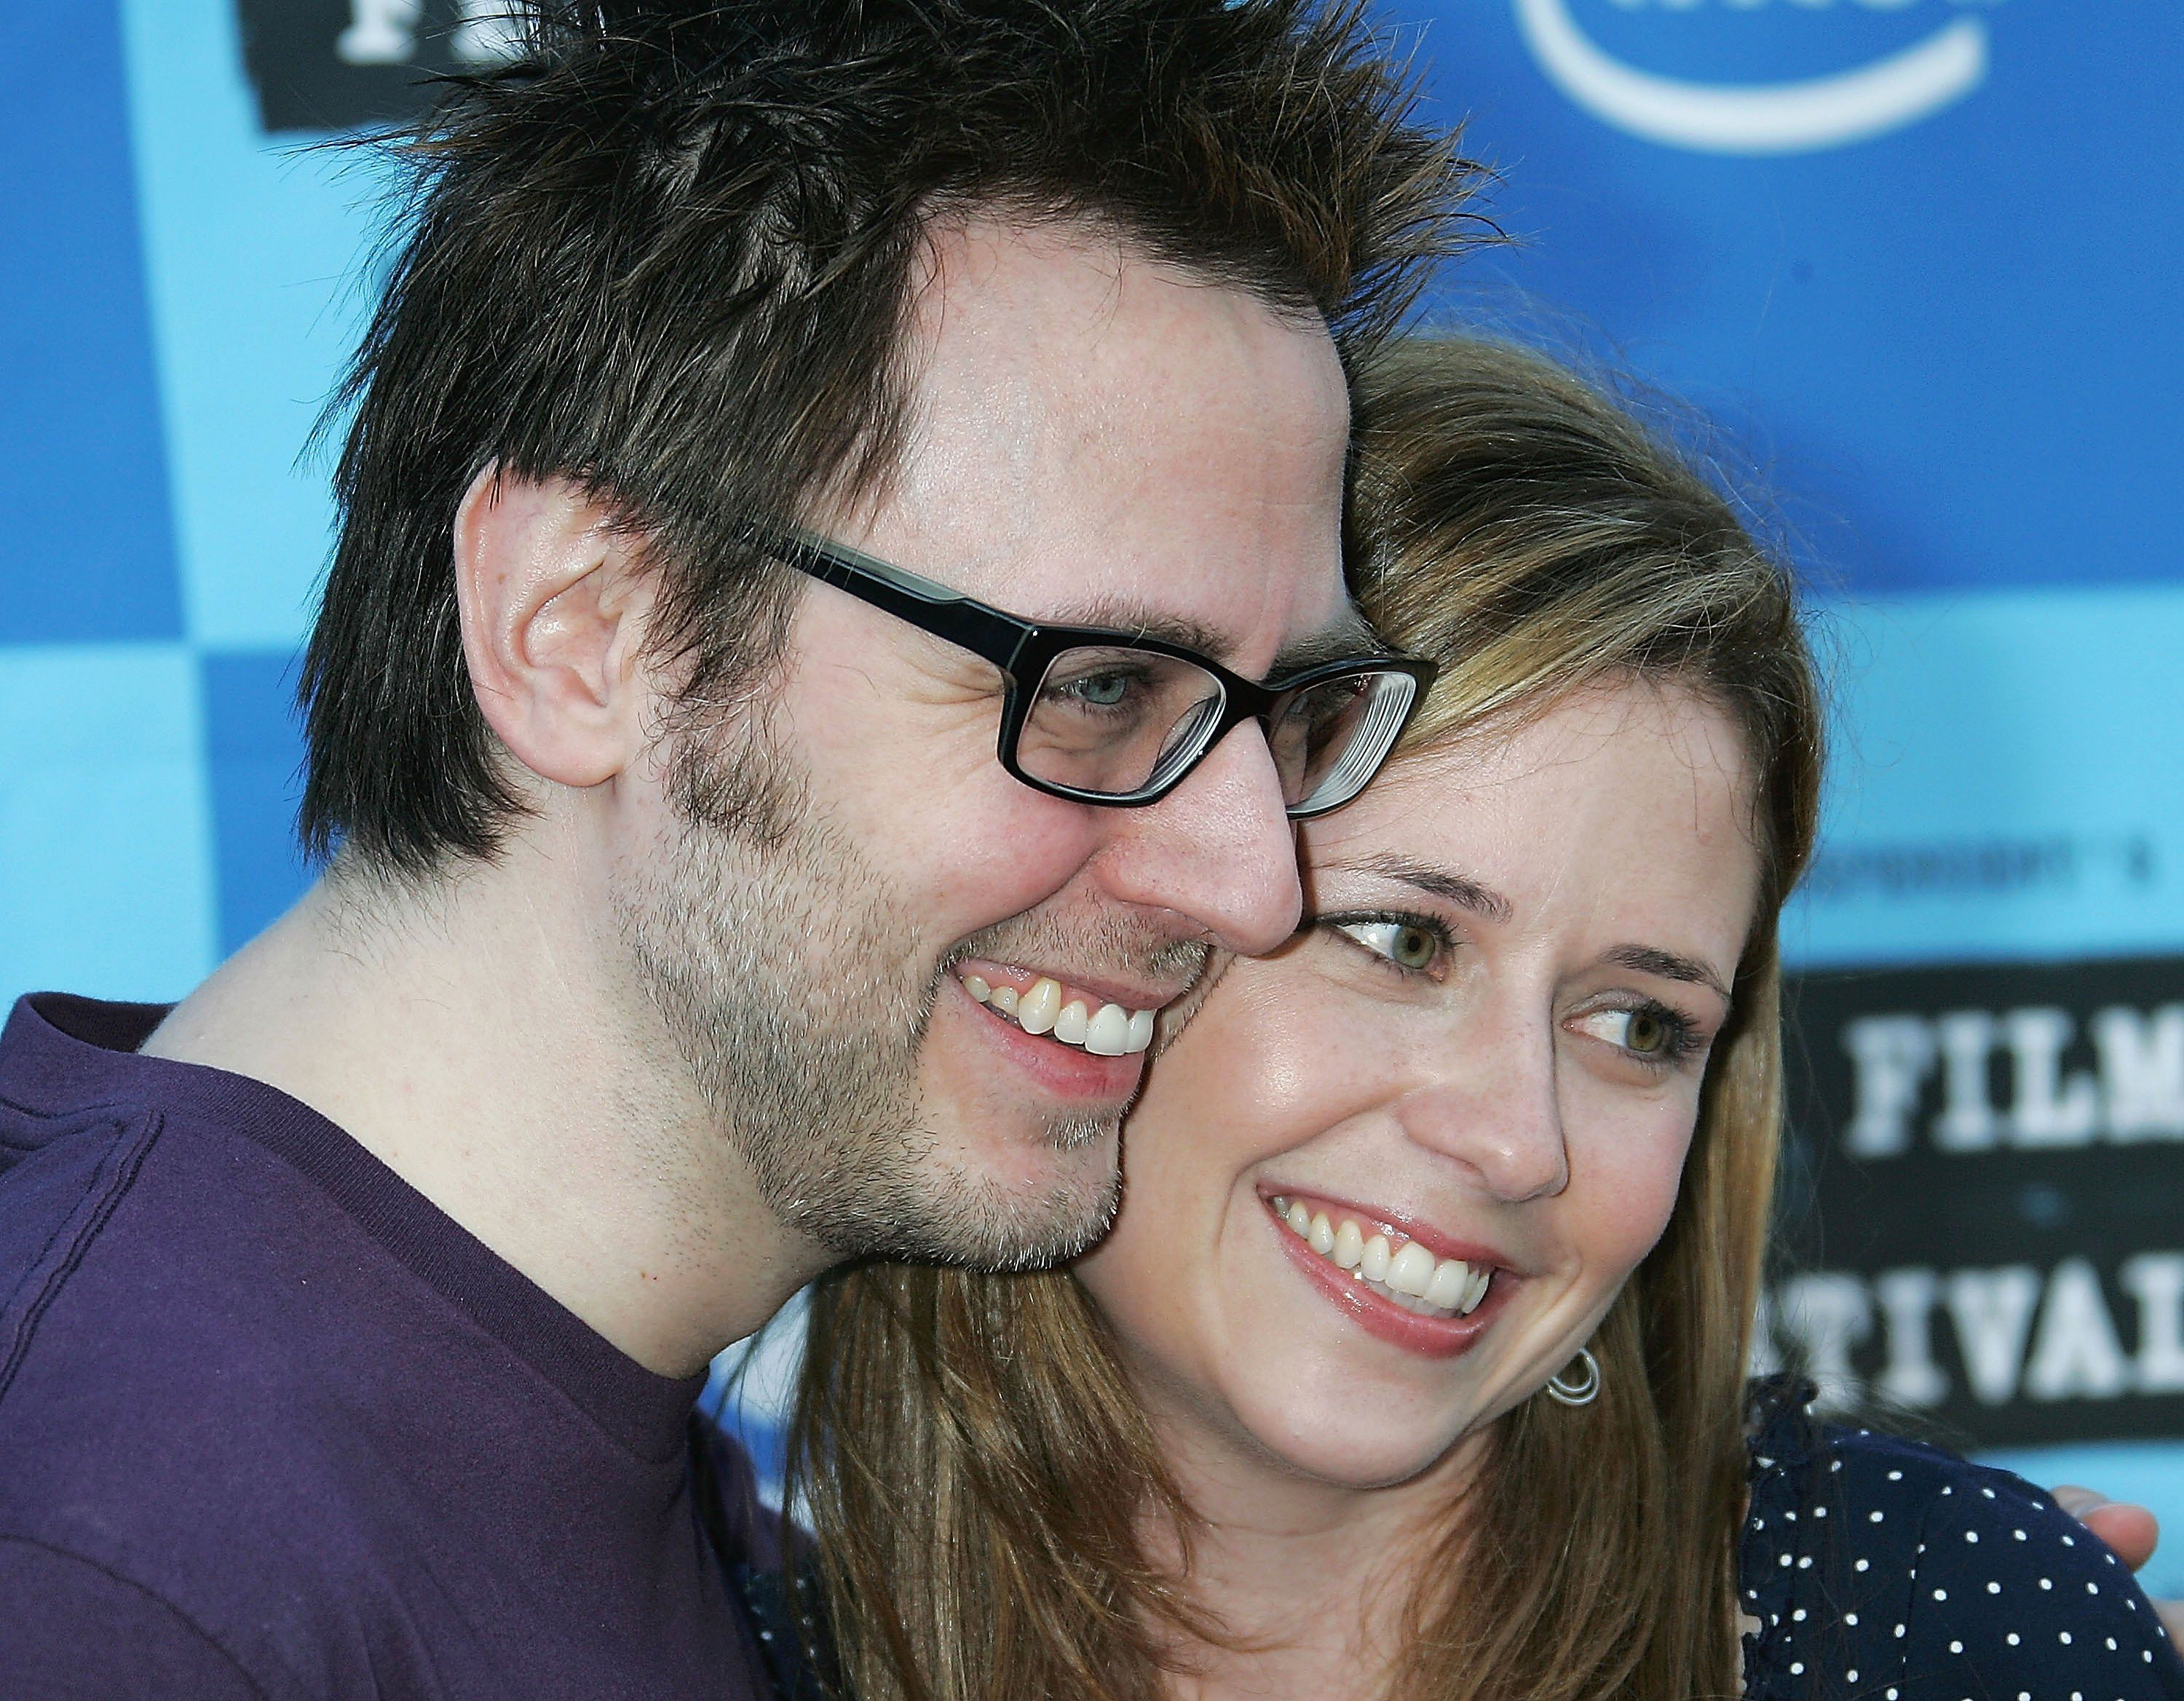 Jenna Fischer used to be married to James Gunn / Getty Images